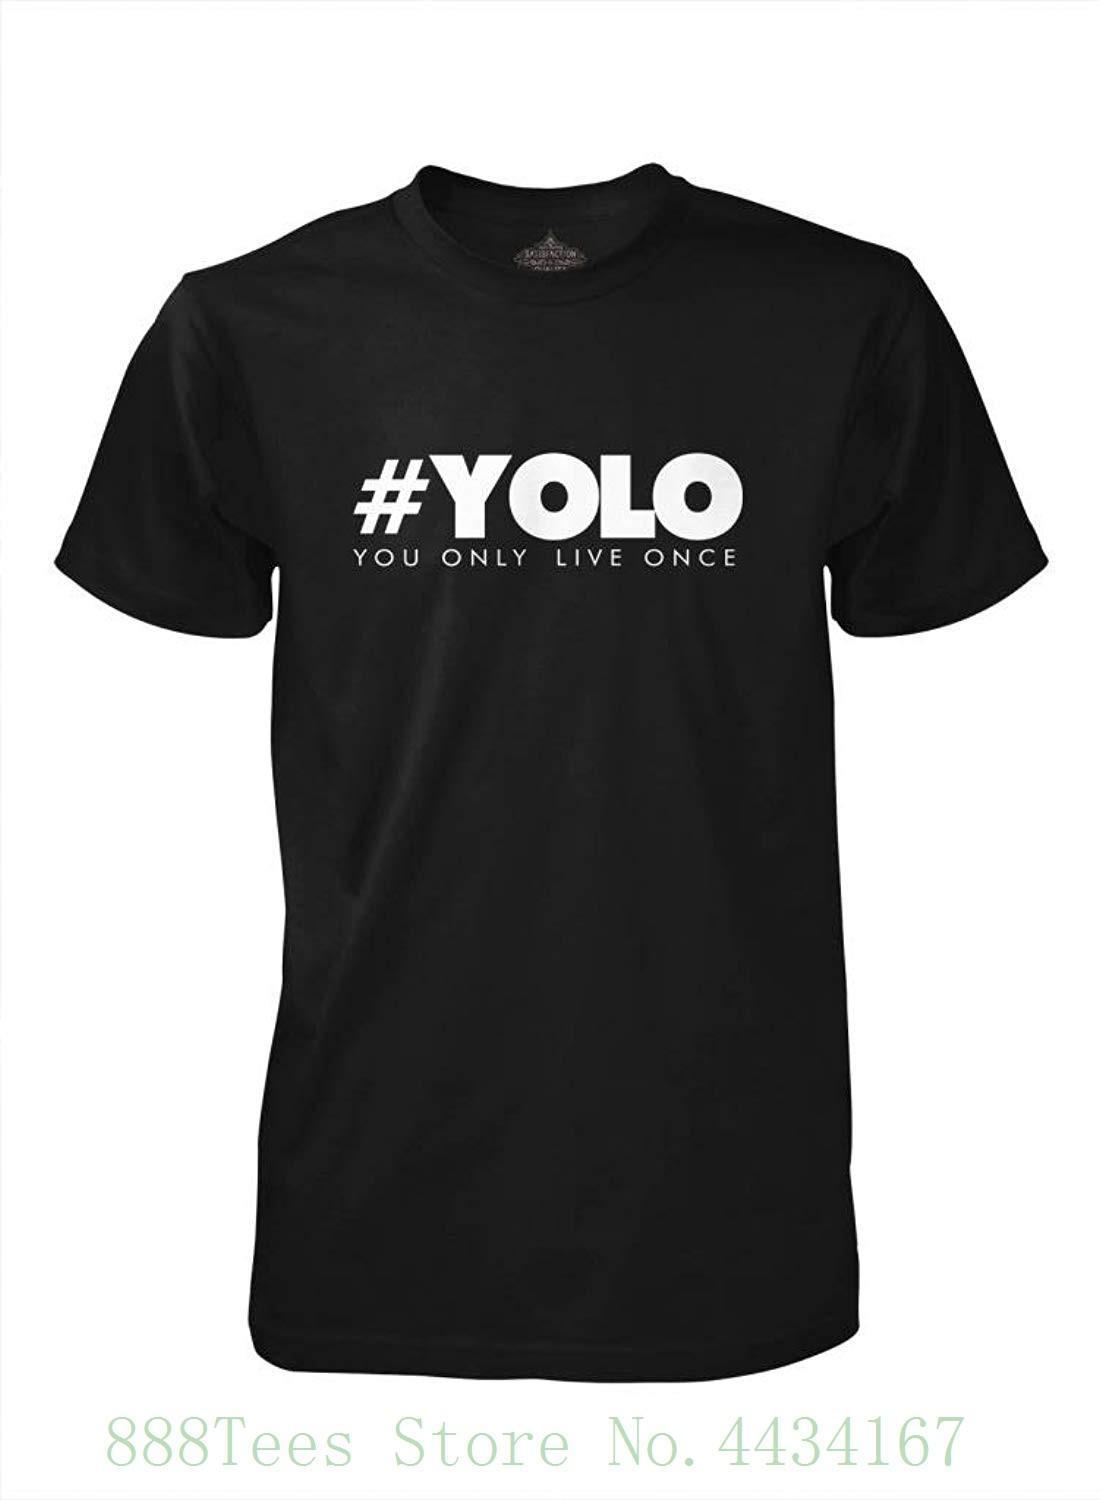 14a399817a  yolo You Only Live Once T Shirt Printed Summer Style Tees Male Harajuku  Top Fitness Brand Clothing Cool Tee Shirt Designs Buy Cool T Shirts Online  From ...